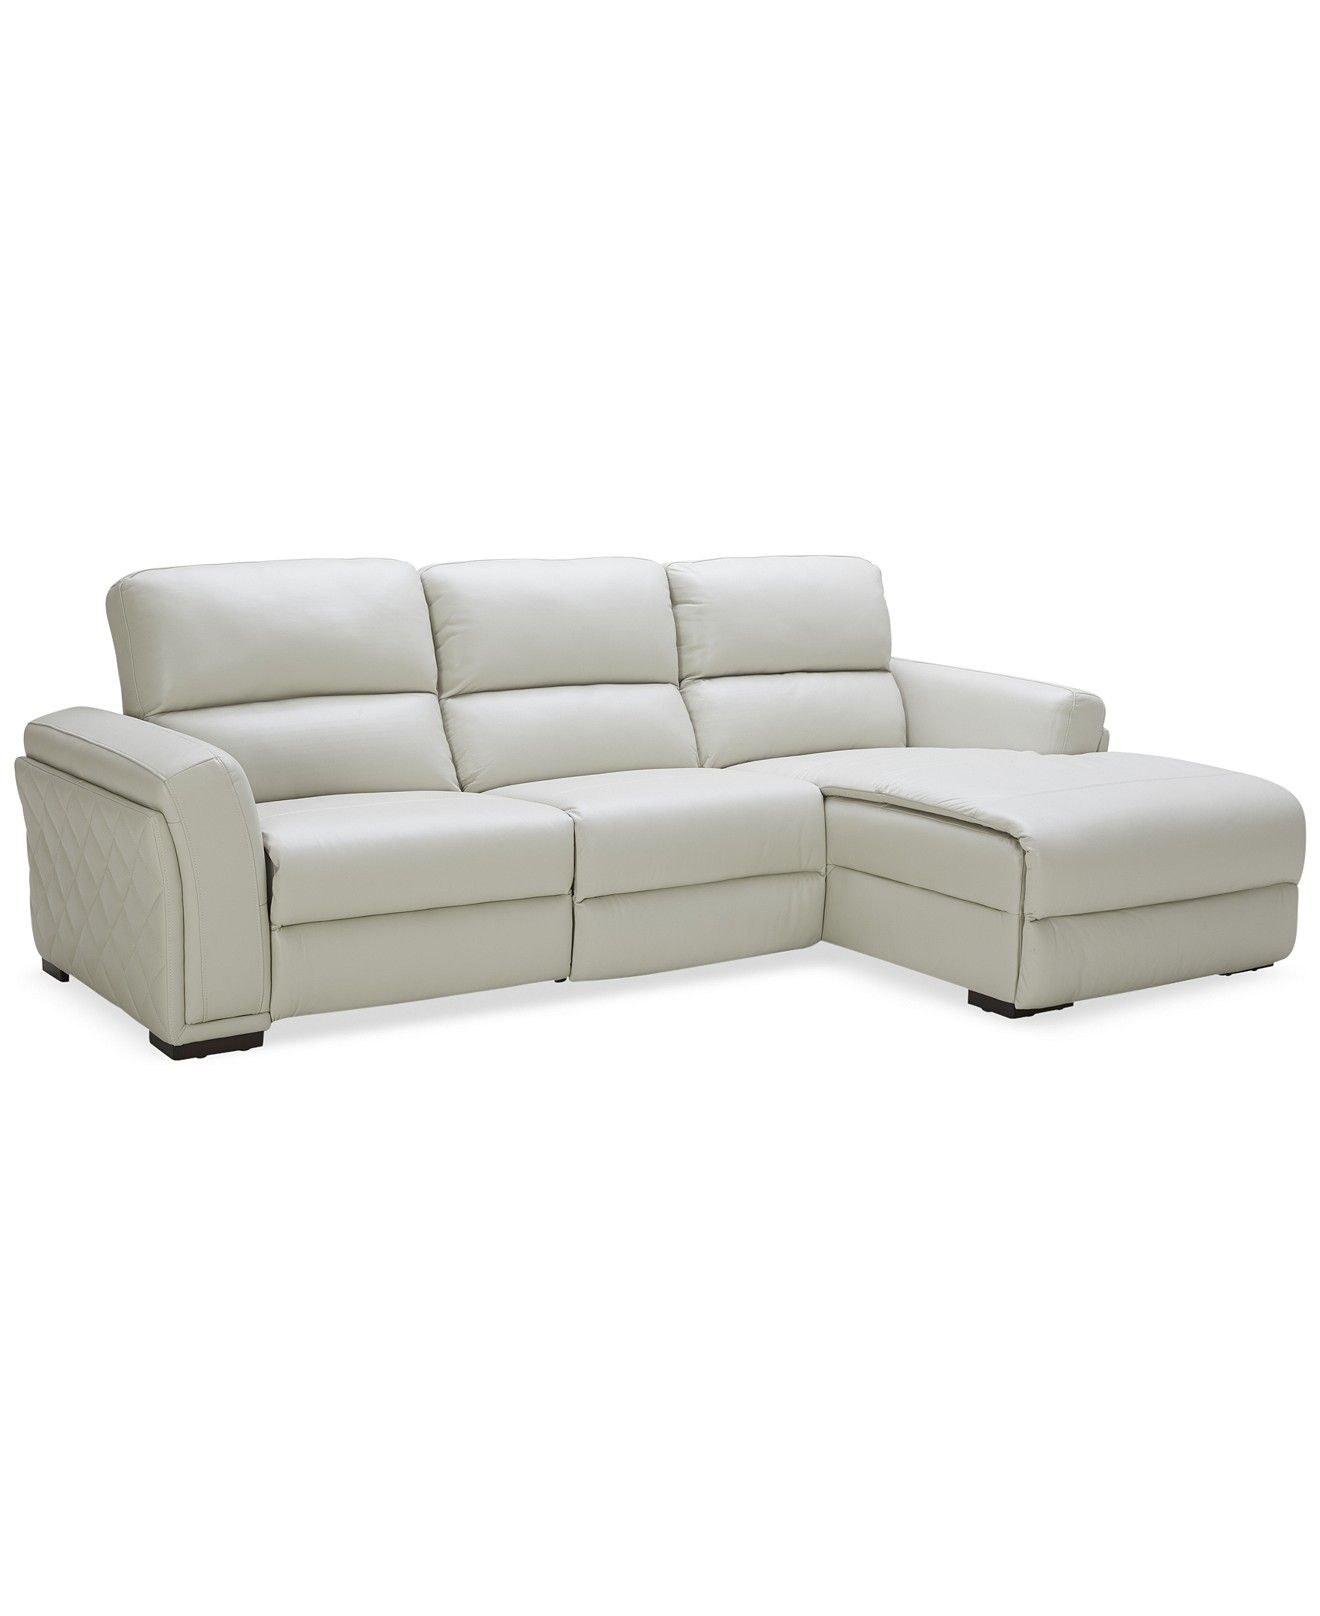 Jessi Quilted Side Leather 6-Piece Sectional Sofa with 6 Power